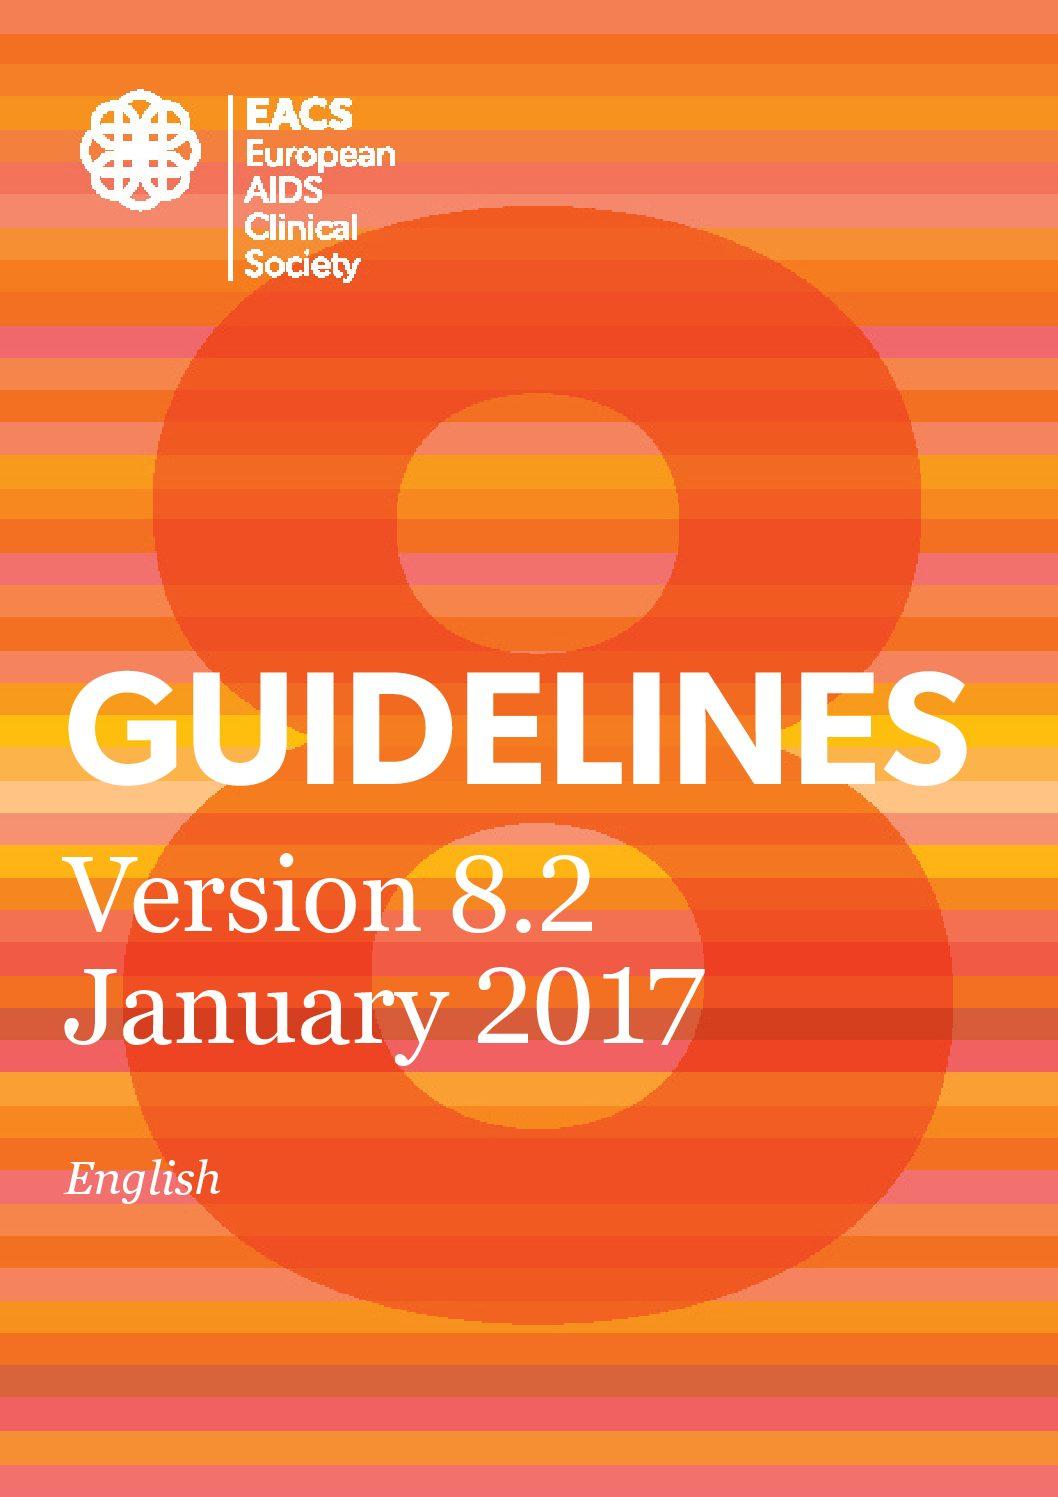 EACS guidelines 8.2 January 2017